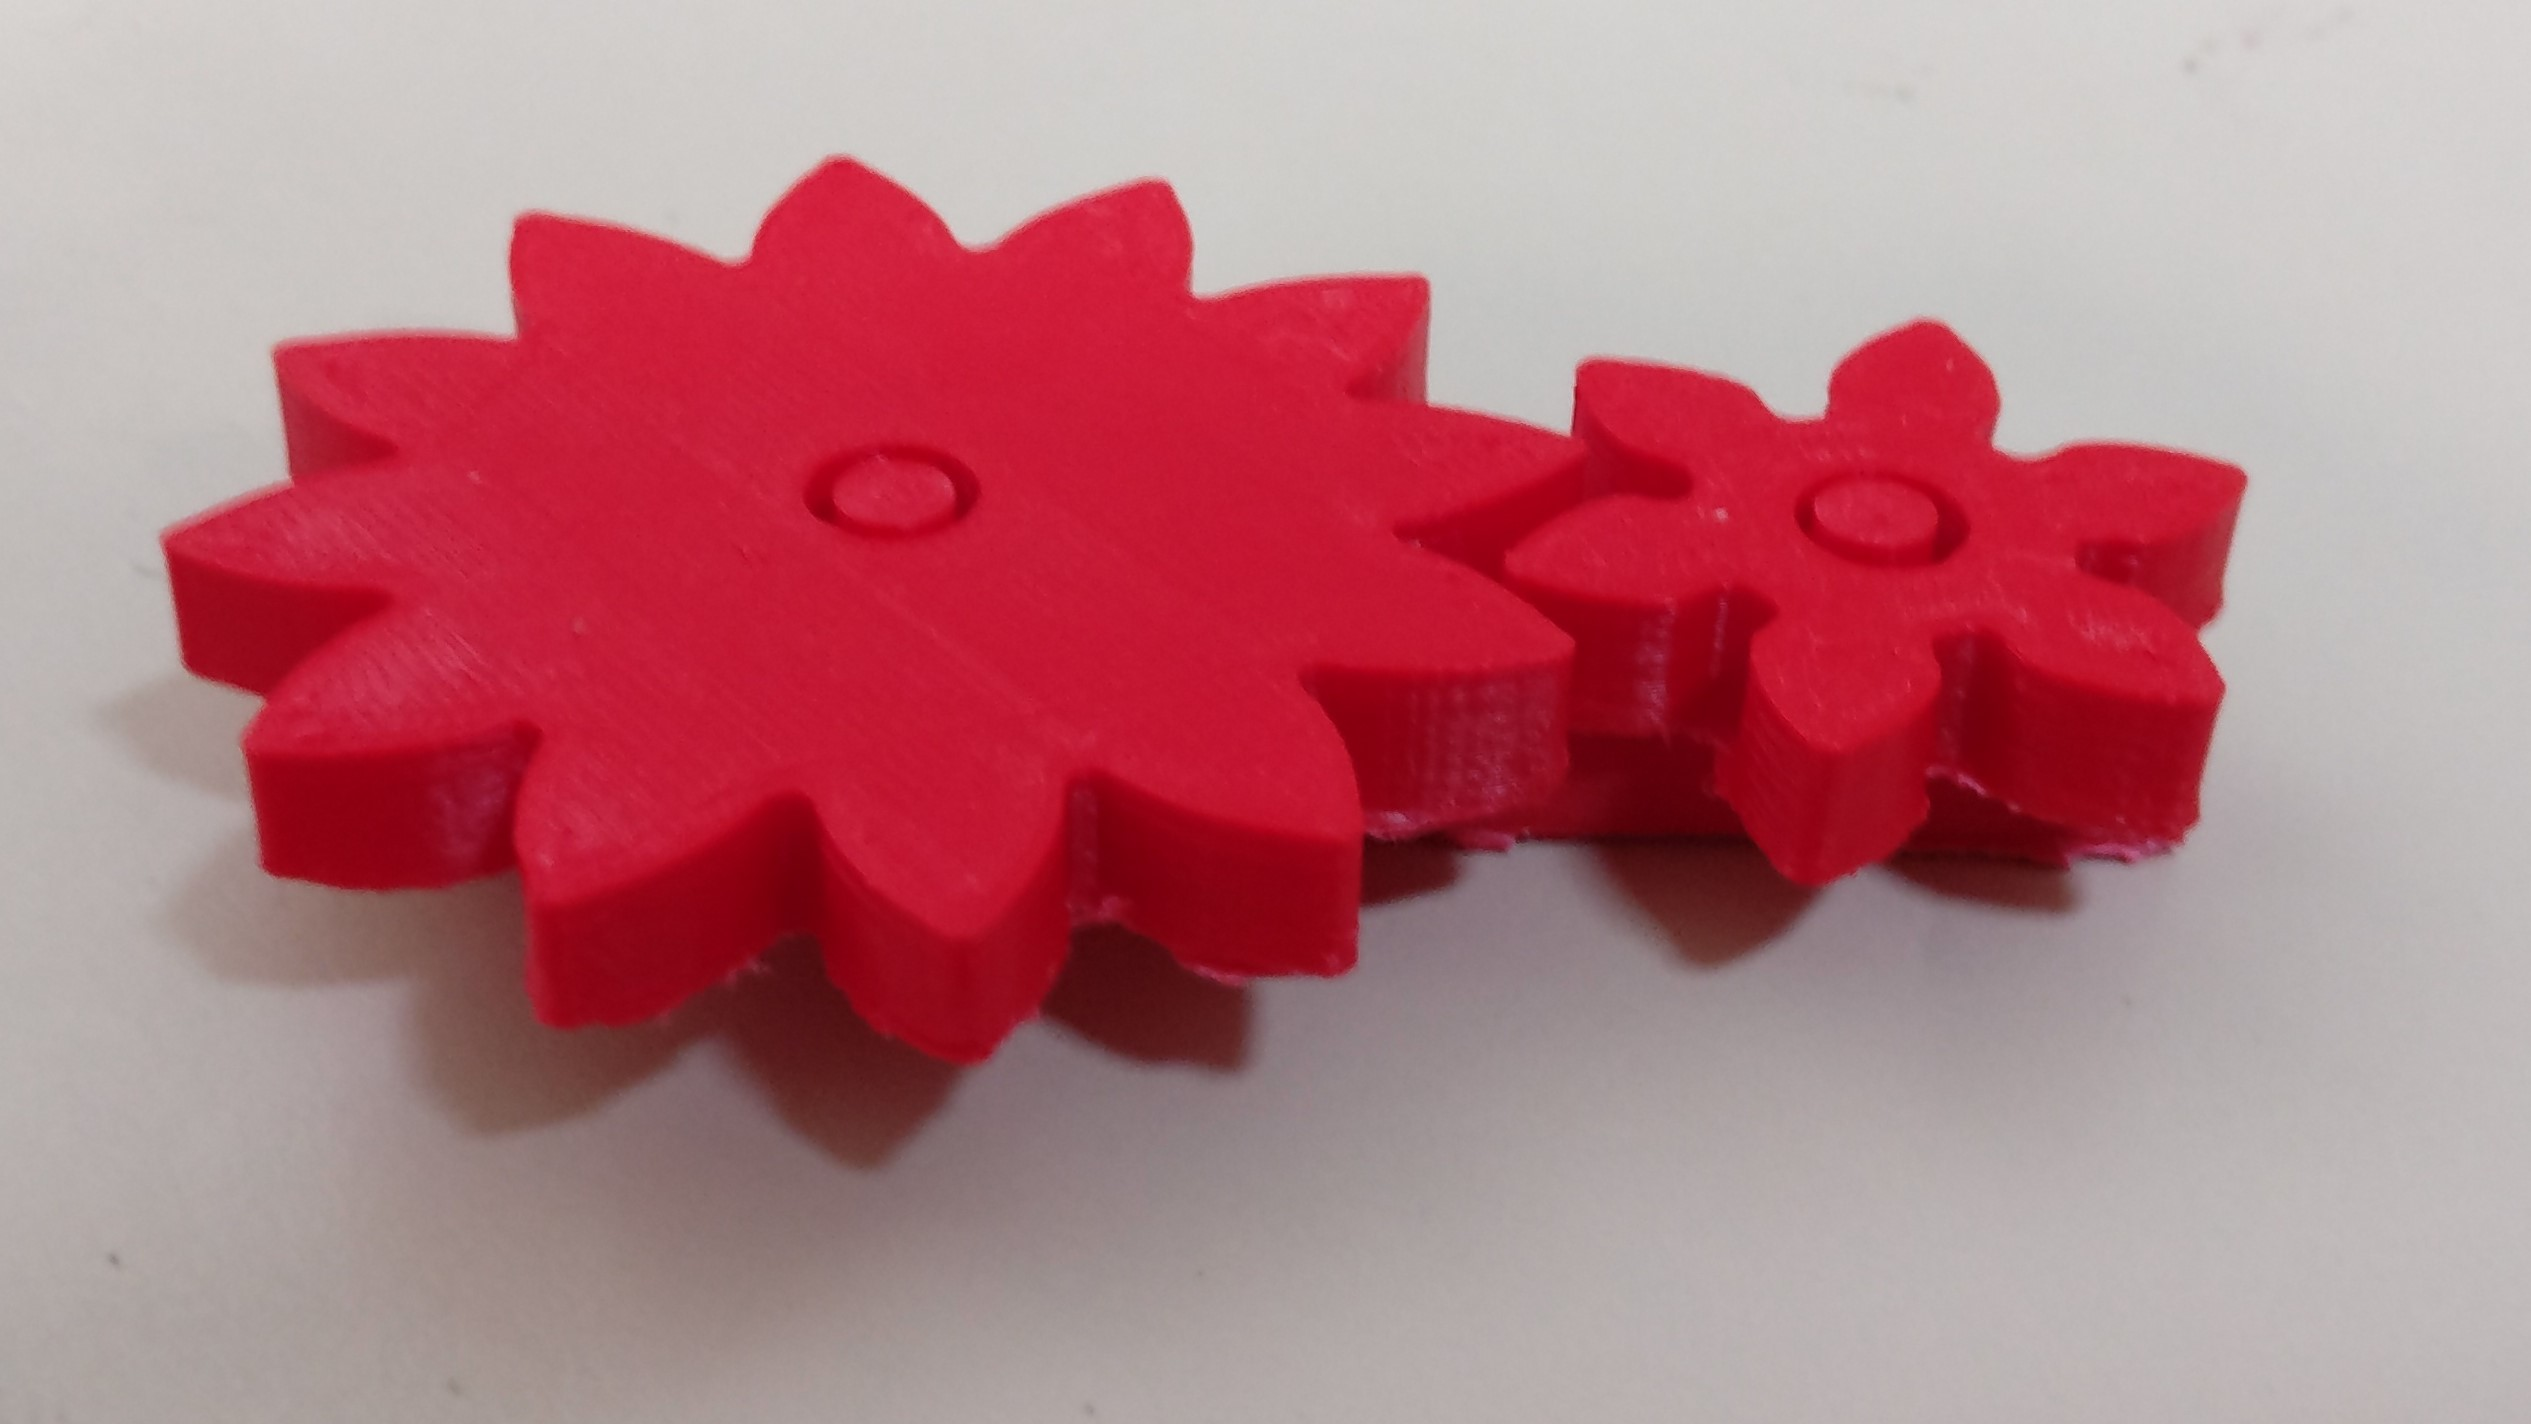 algorithms for 3d printing and other manufacturing processes